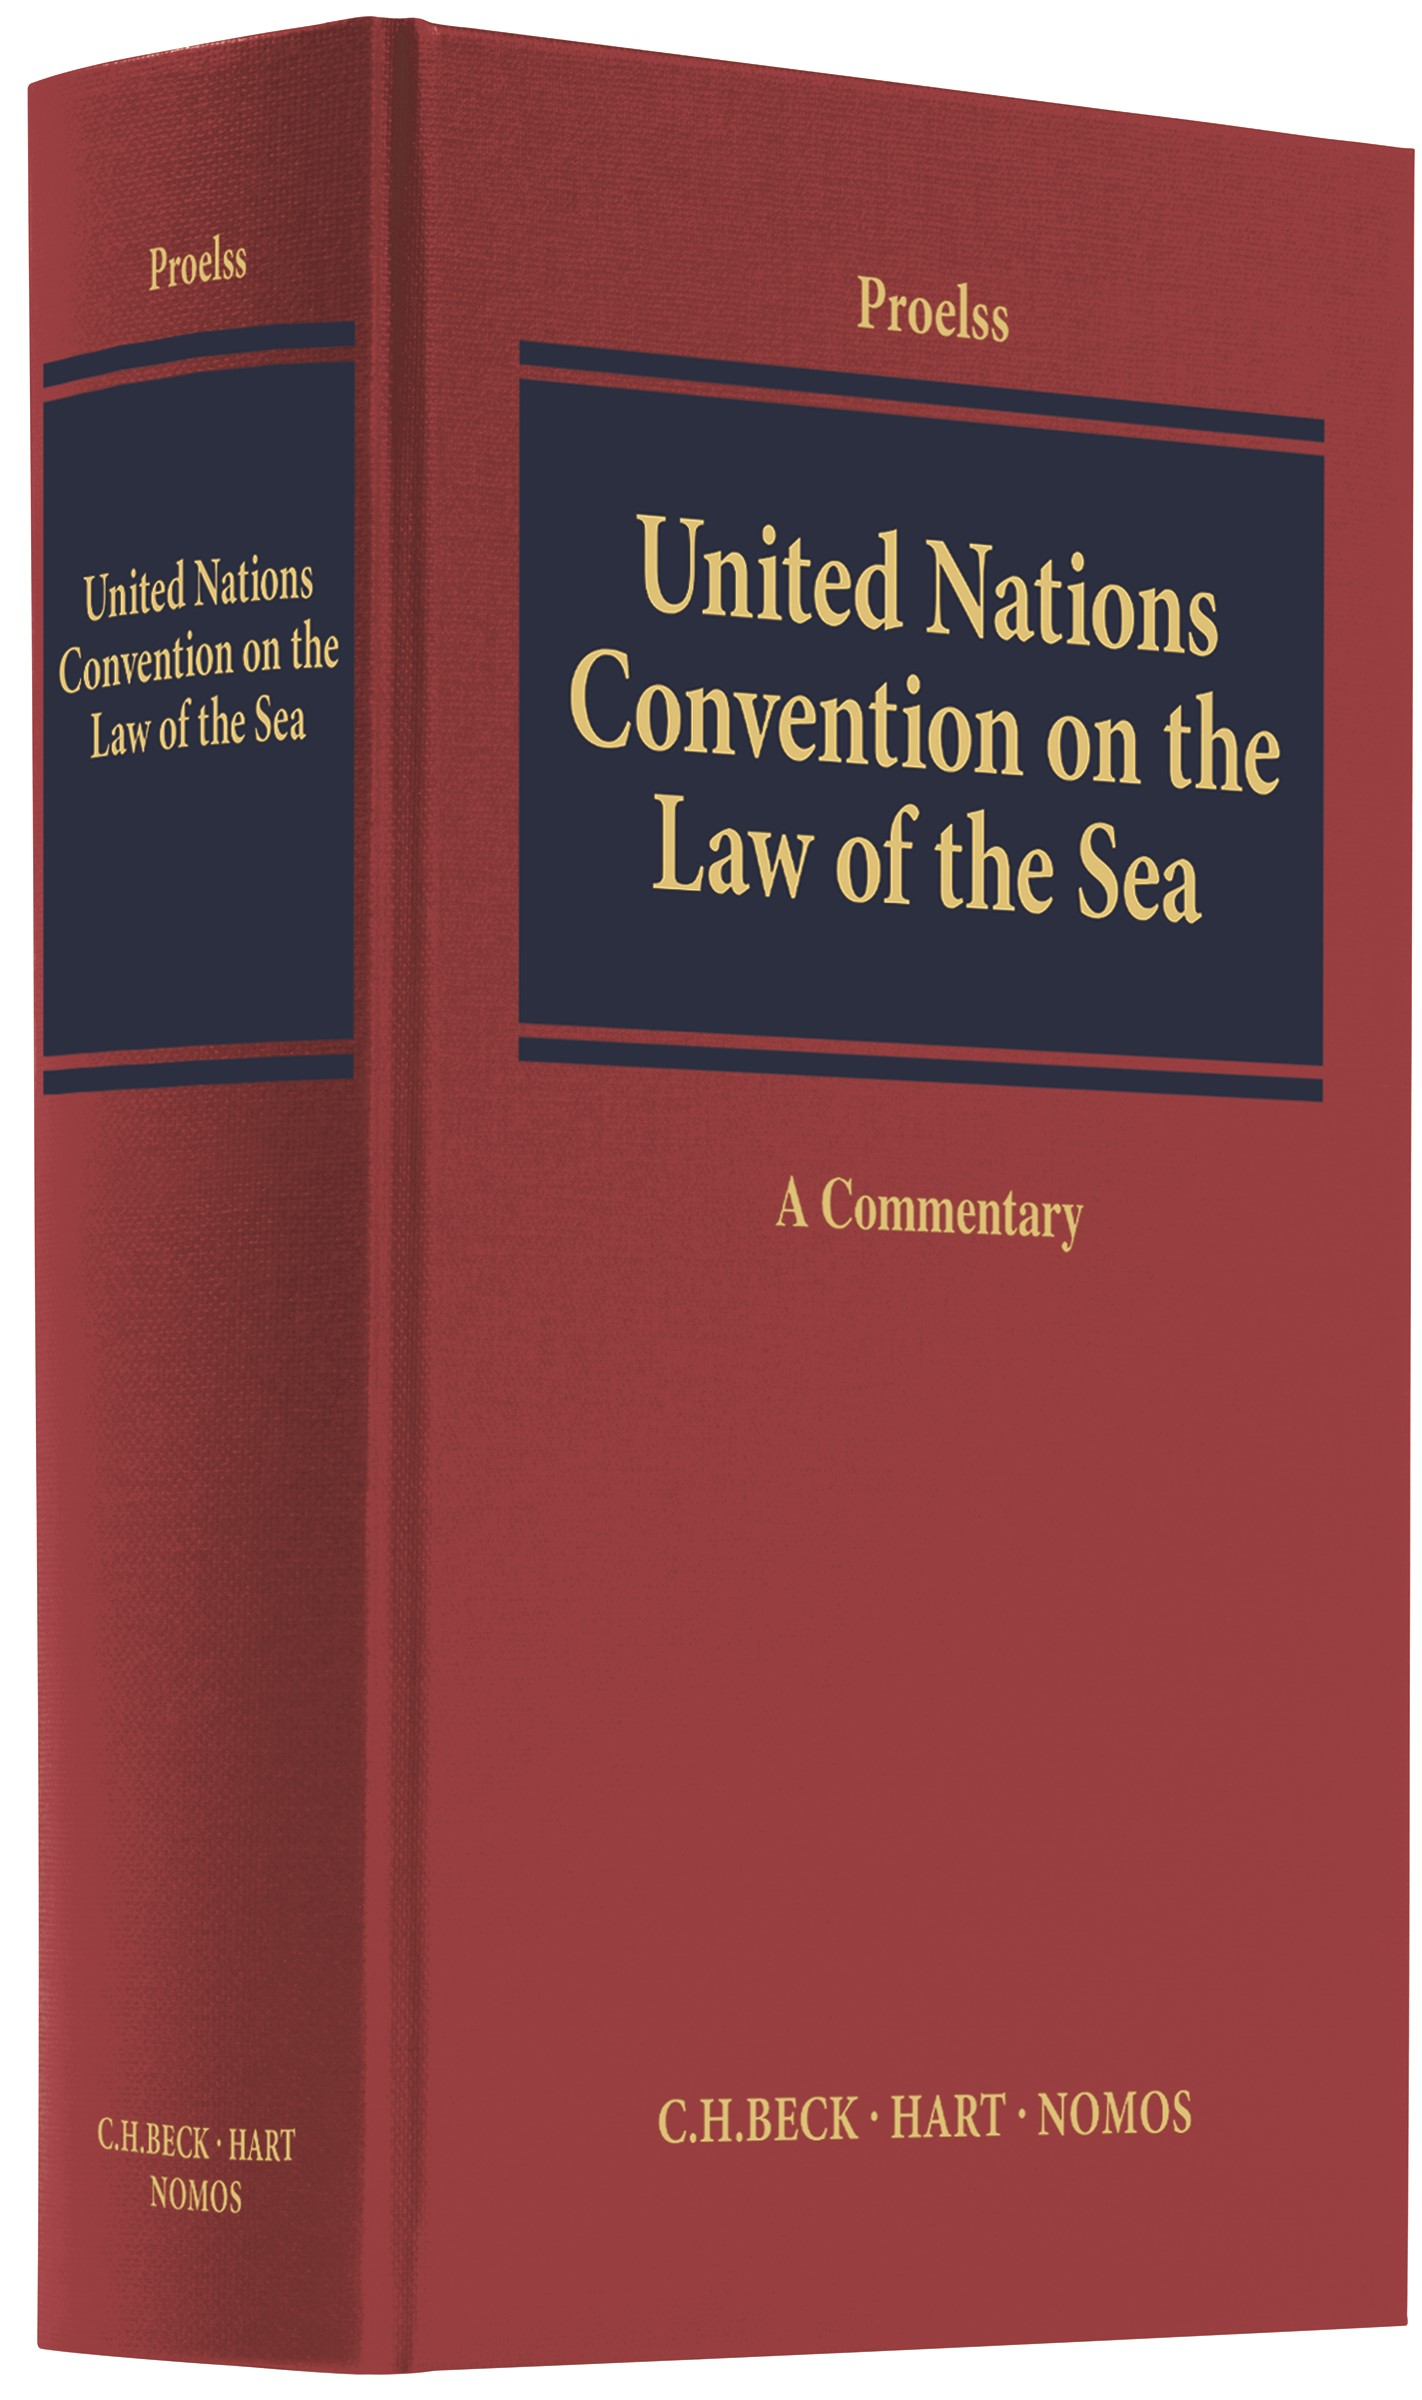 United Nations Convention on the Law of the Sea: UNCLOS | Proelss, 2017 | Buch (Cover)